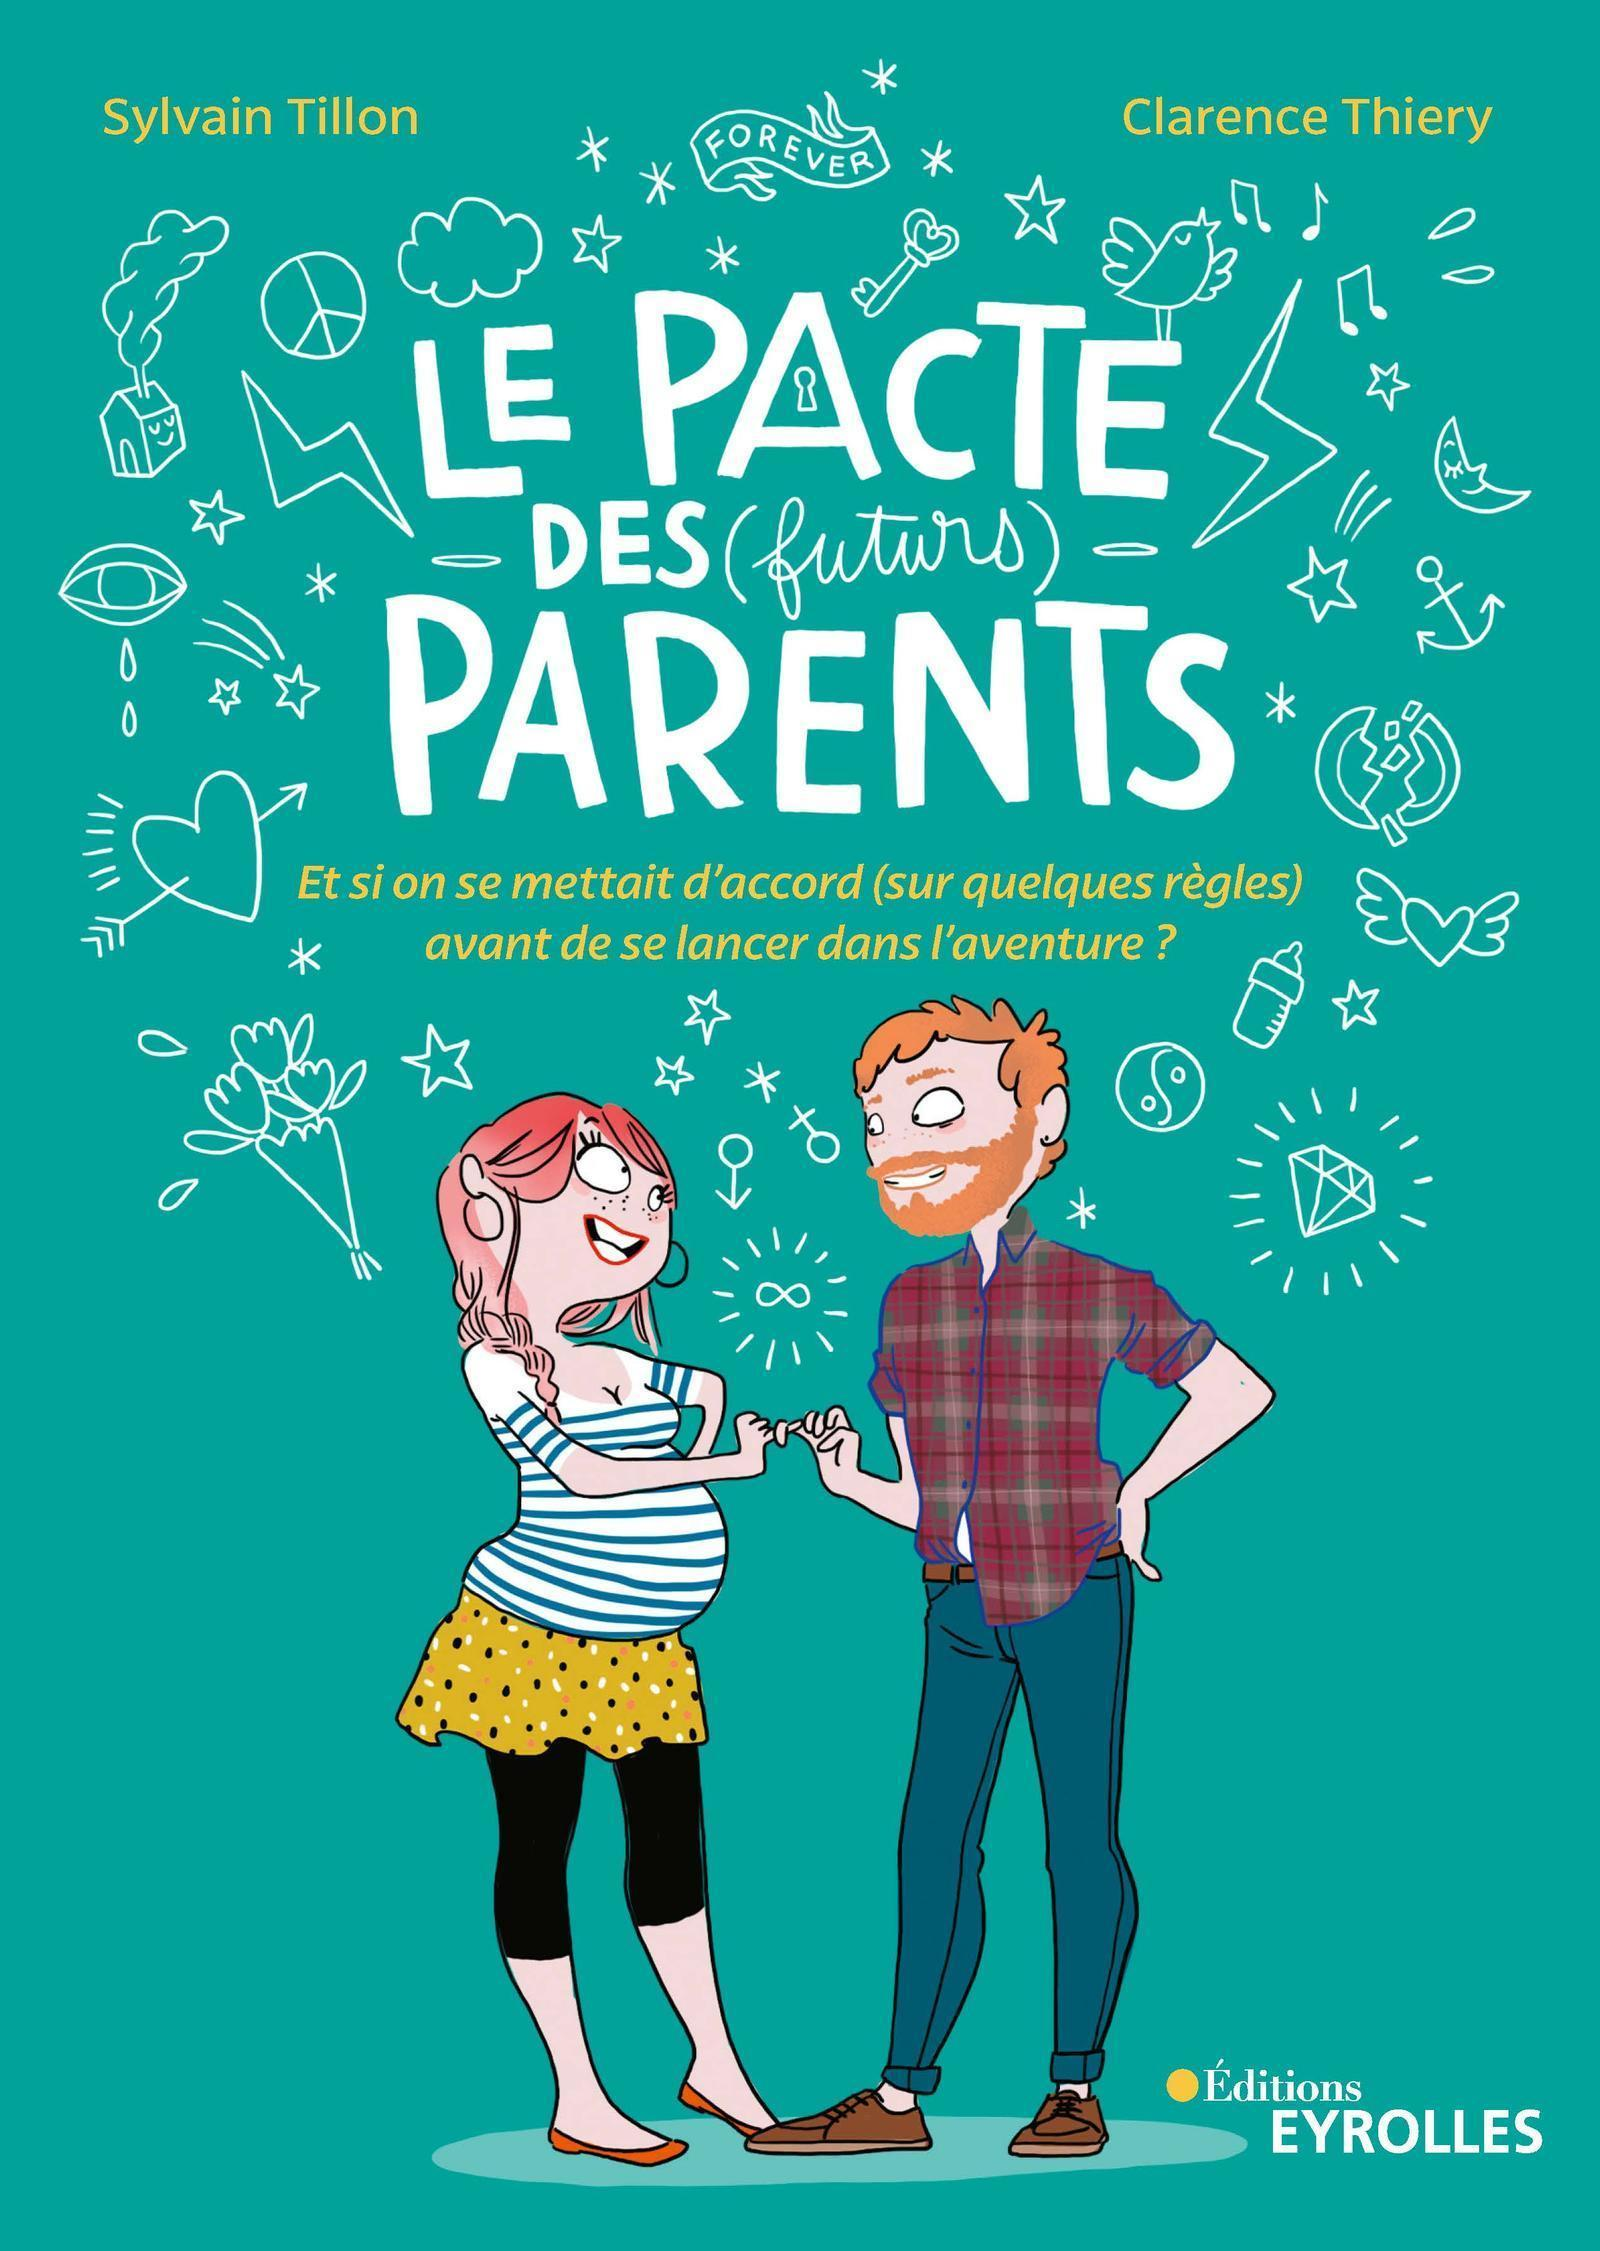 LE PACTE DES (FUTURS) PARENTS - ET SI ON SE METTAIT D'ACCORD (SUR QUELQUES REGLES) AVANT DE SE LANCE